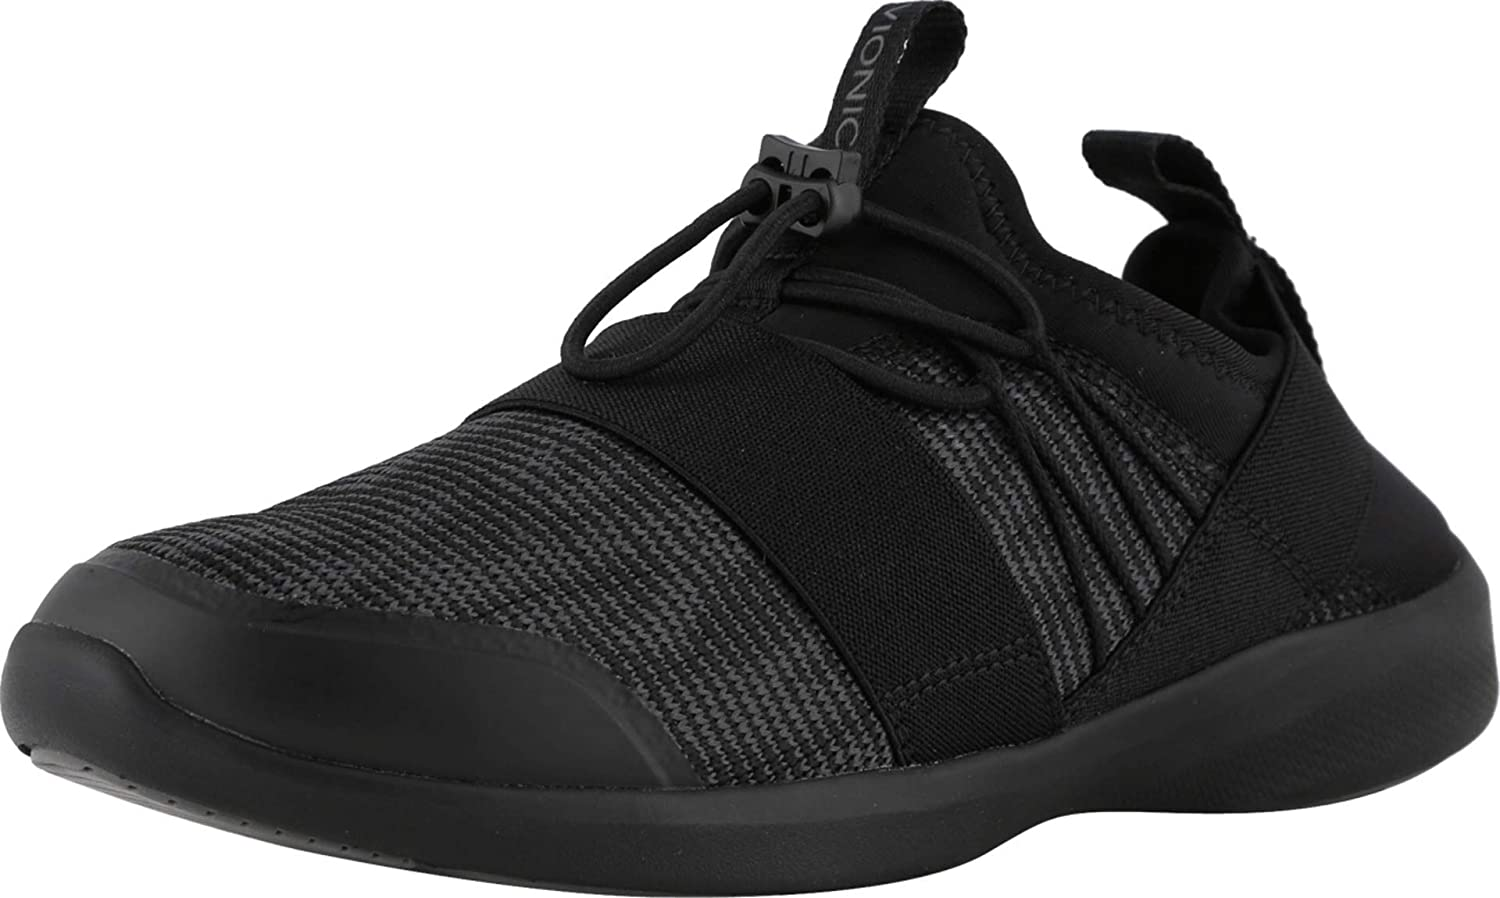 Vionic Women's Sky Alaina Slip-on Active Sneaker - Ladies Walking Shoes with Concealed Orthotic Arch Support